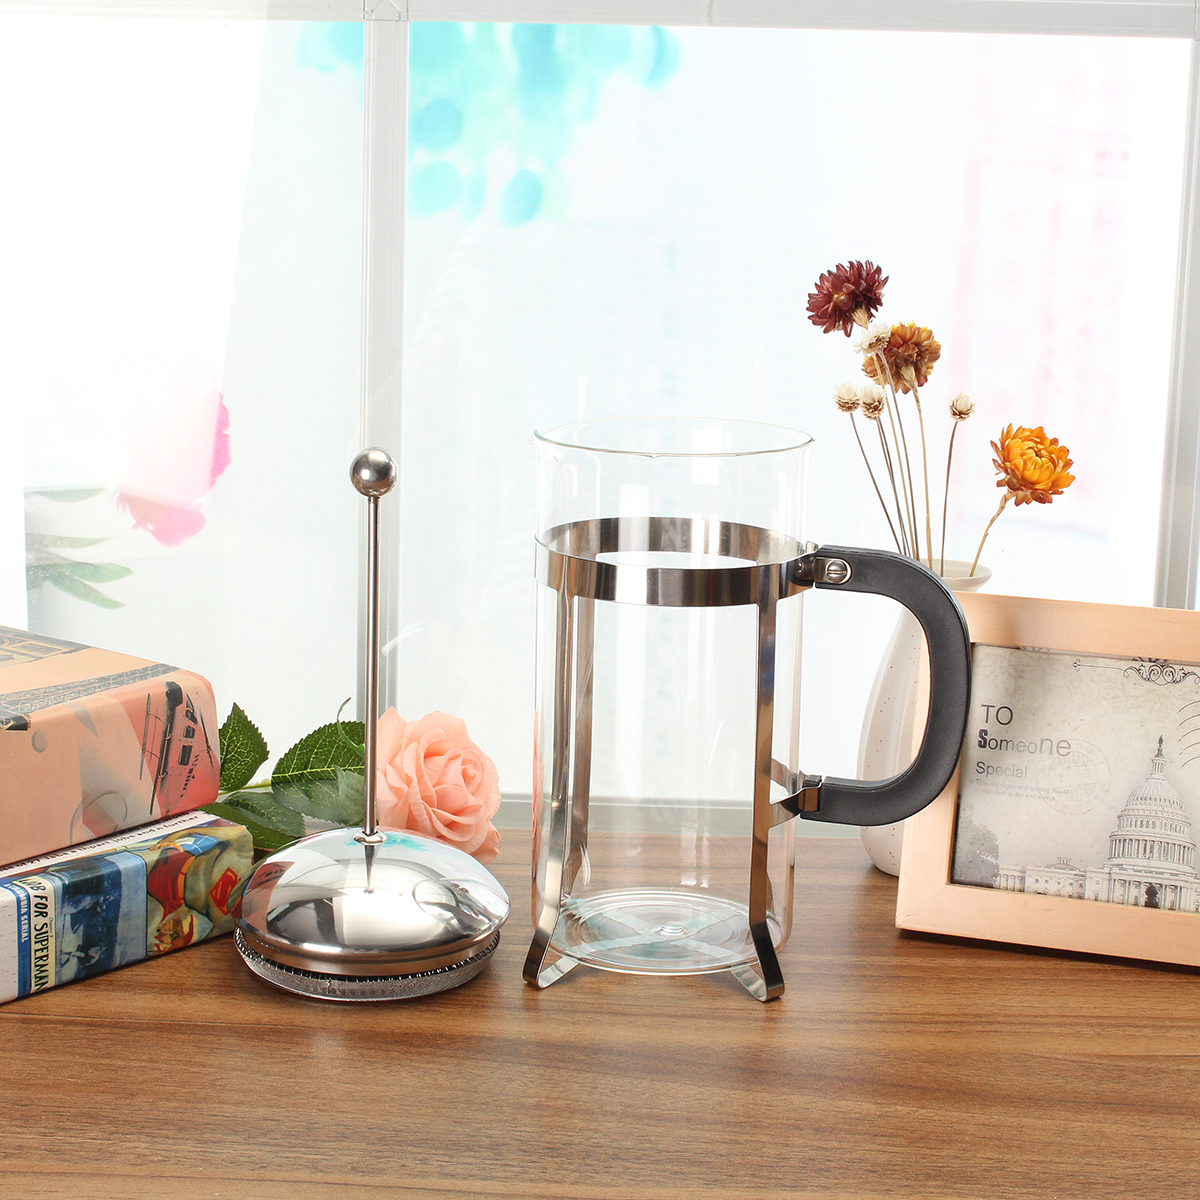 1000ml Home Glass & Stainless Steel Cafetiere Coffee Maker Machine Press Filter